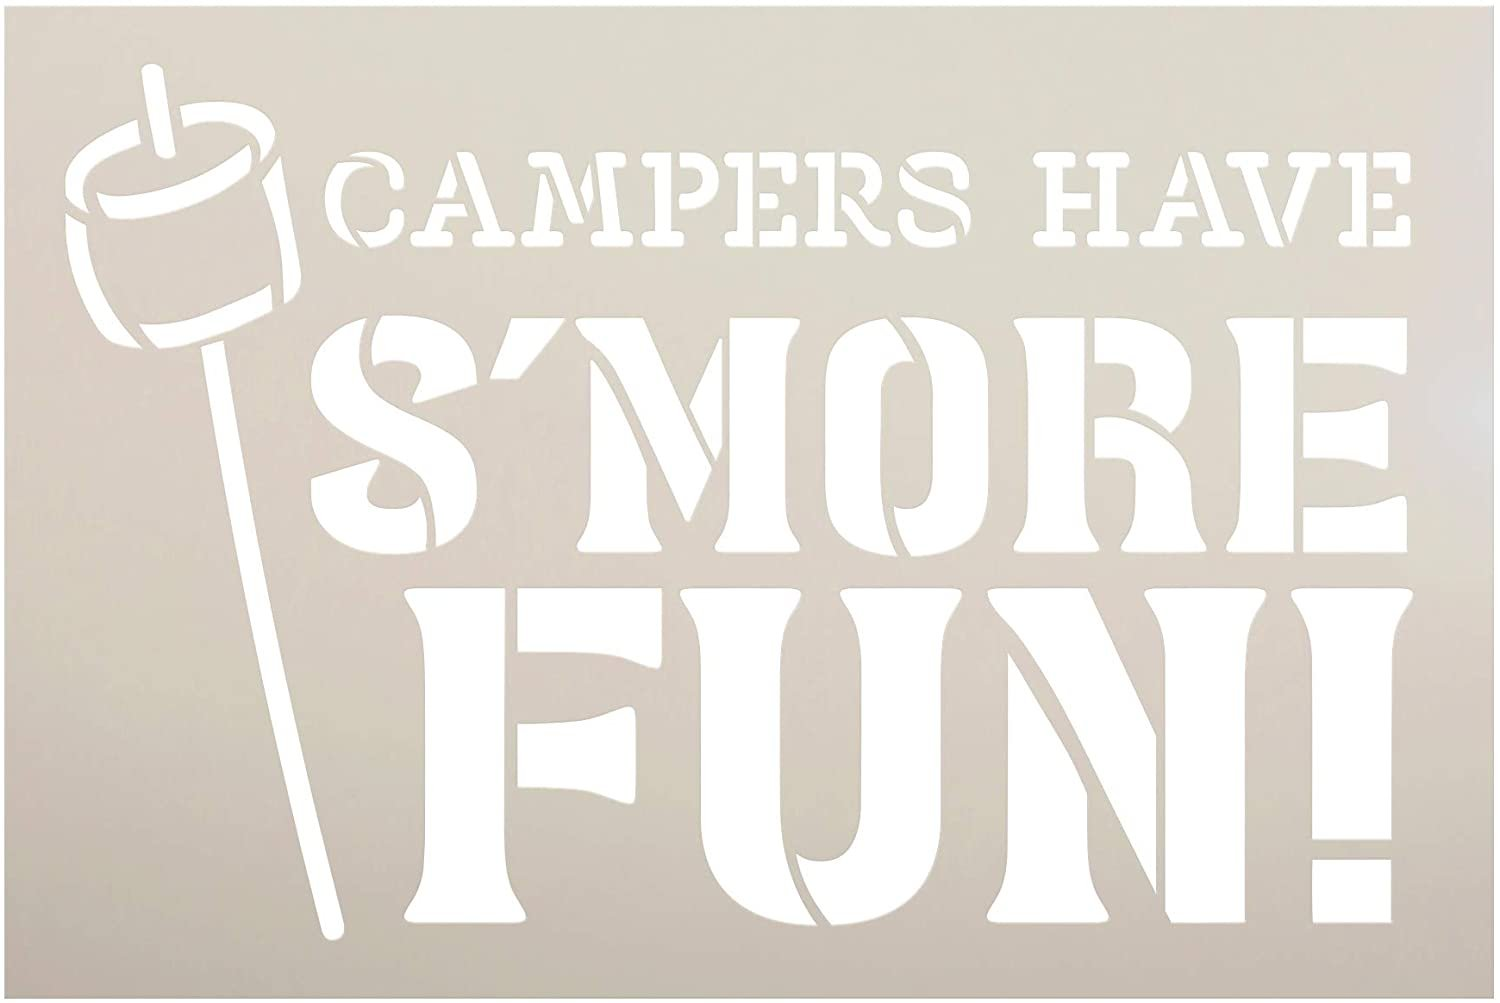 Campers Have S'More Fun Stencil with Marshmallow by StudioR12   DIY Summer Camping Home Decor   Outdoor Adventure Word Art   Paint Wood Signs   Reusable Mylar Template   Select Size